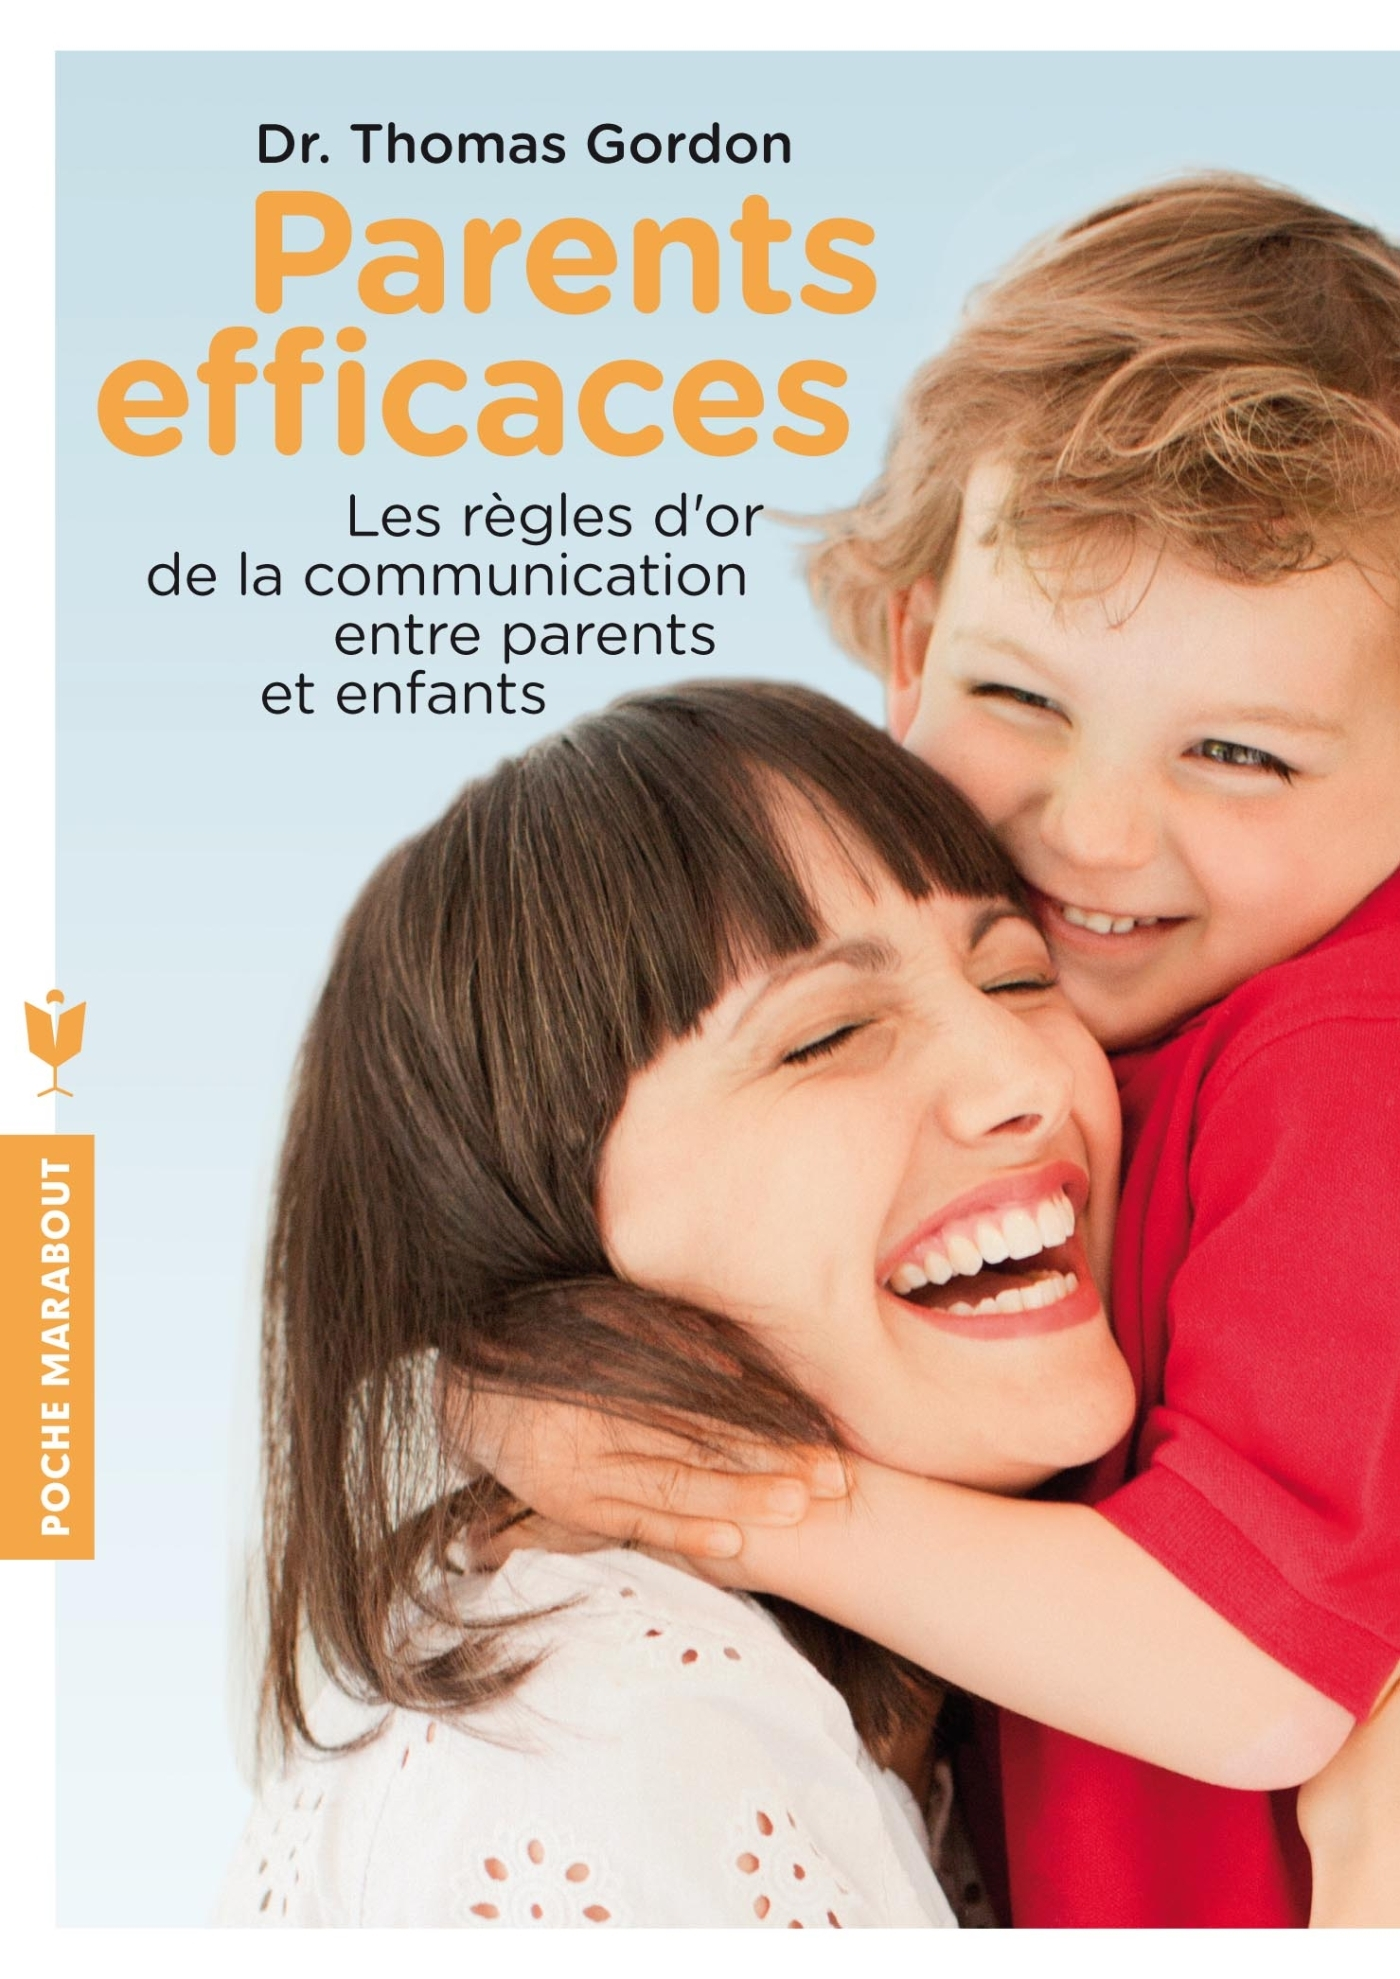 PARENTS EFFICACES - LES REGLES D'OR DE LA COMMUNICATION ENTRE PARENTS ET ENFANTS